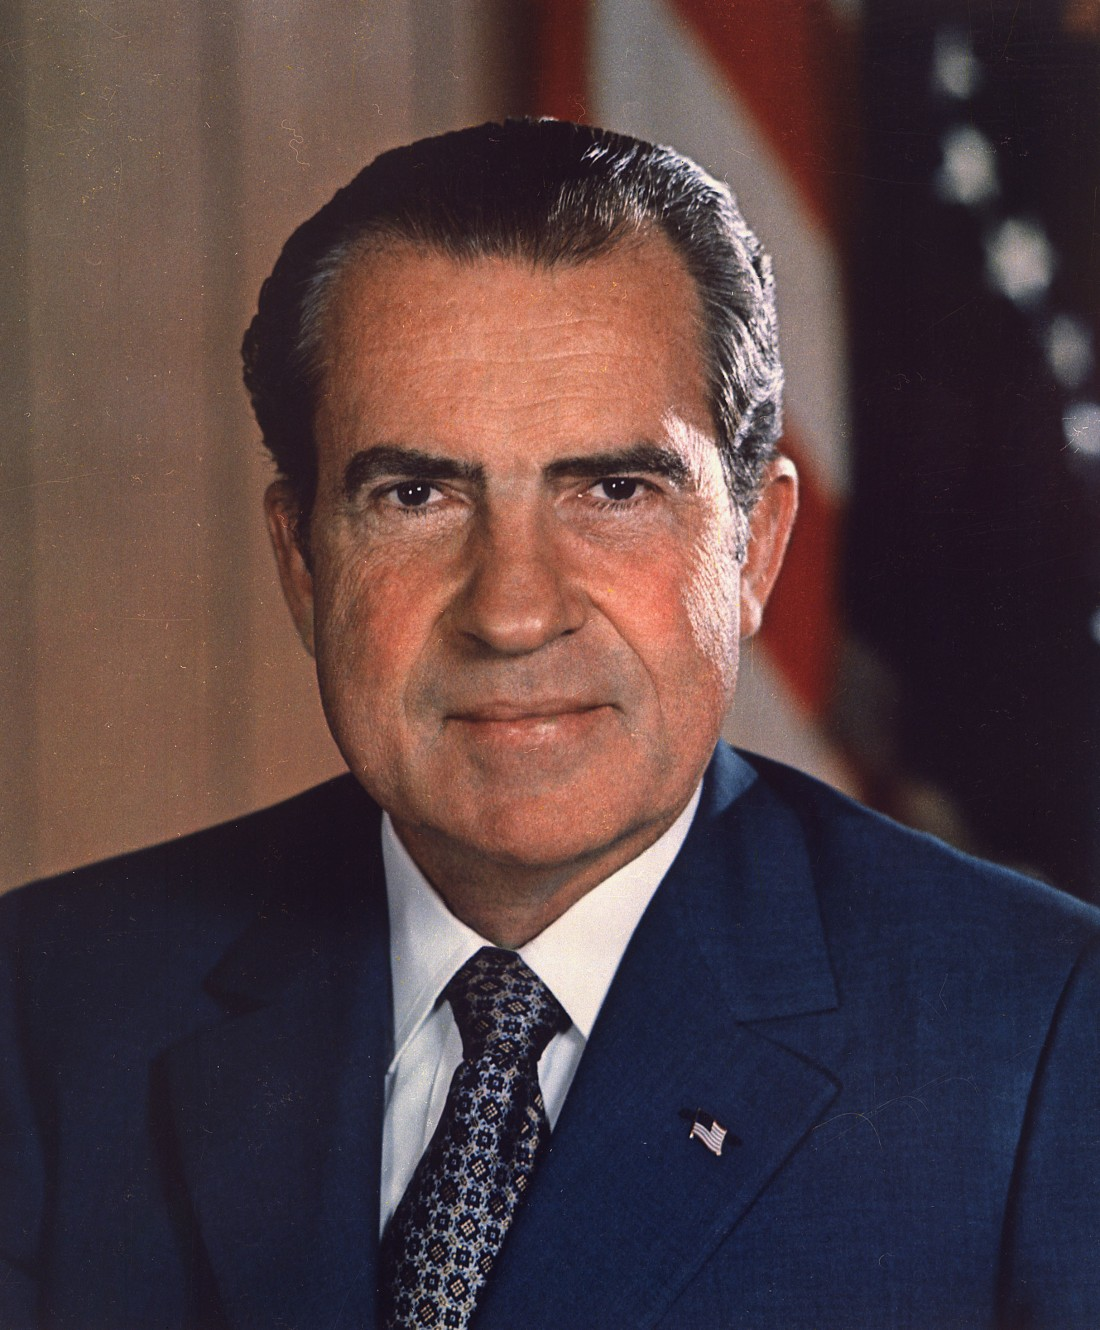 Richard_Nixon_presidential_portrait.jpg